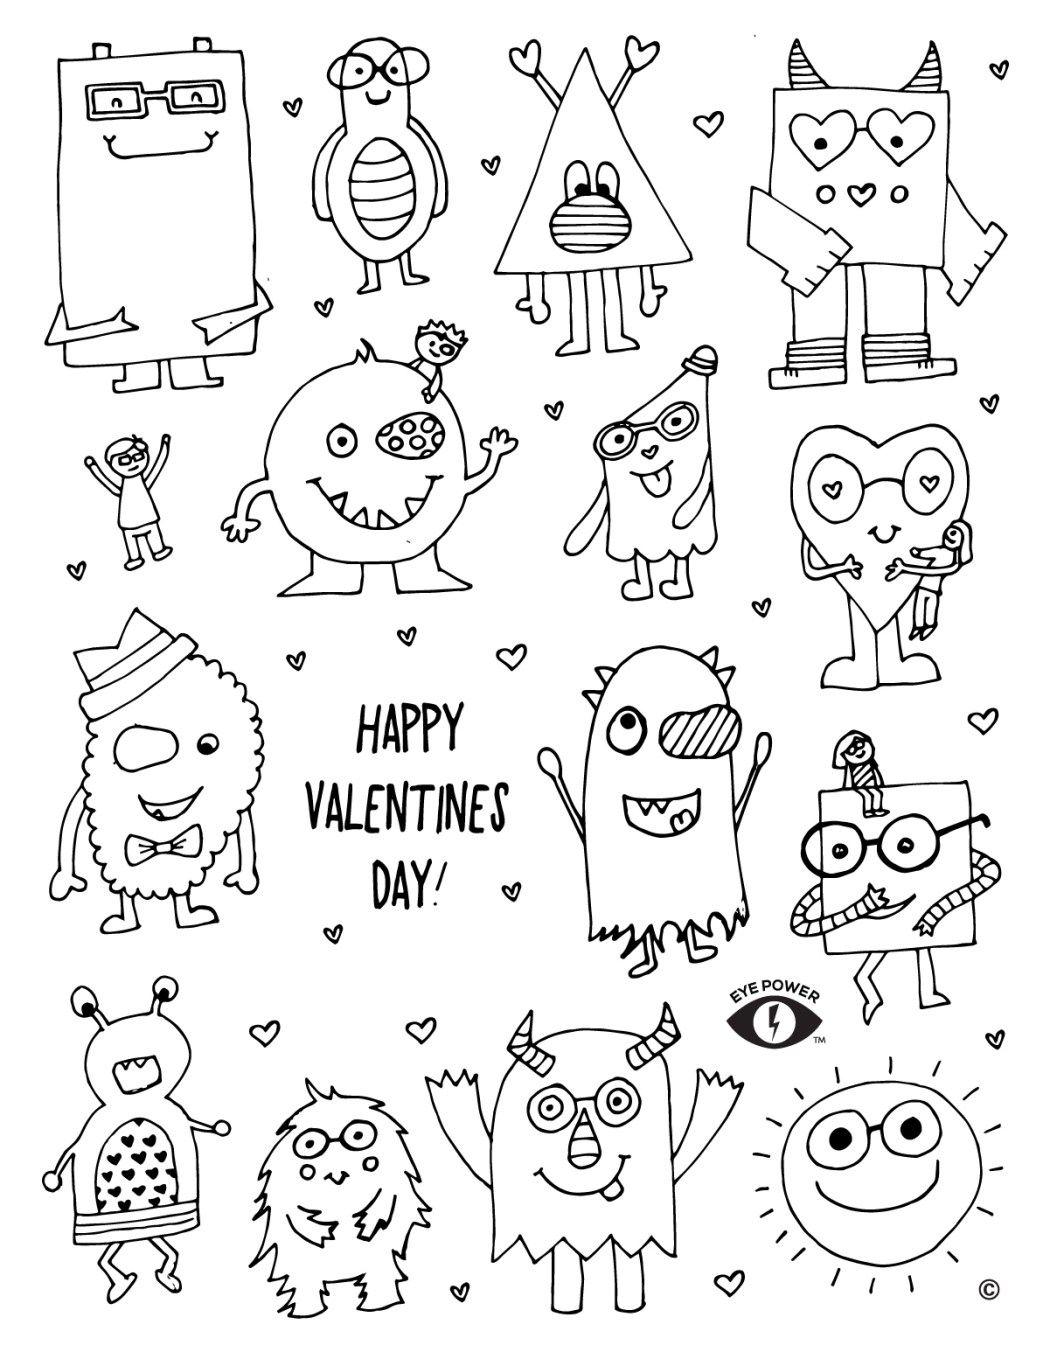 free valentines coloring page printable eye power kids wear